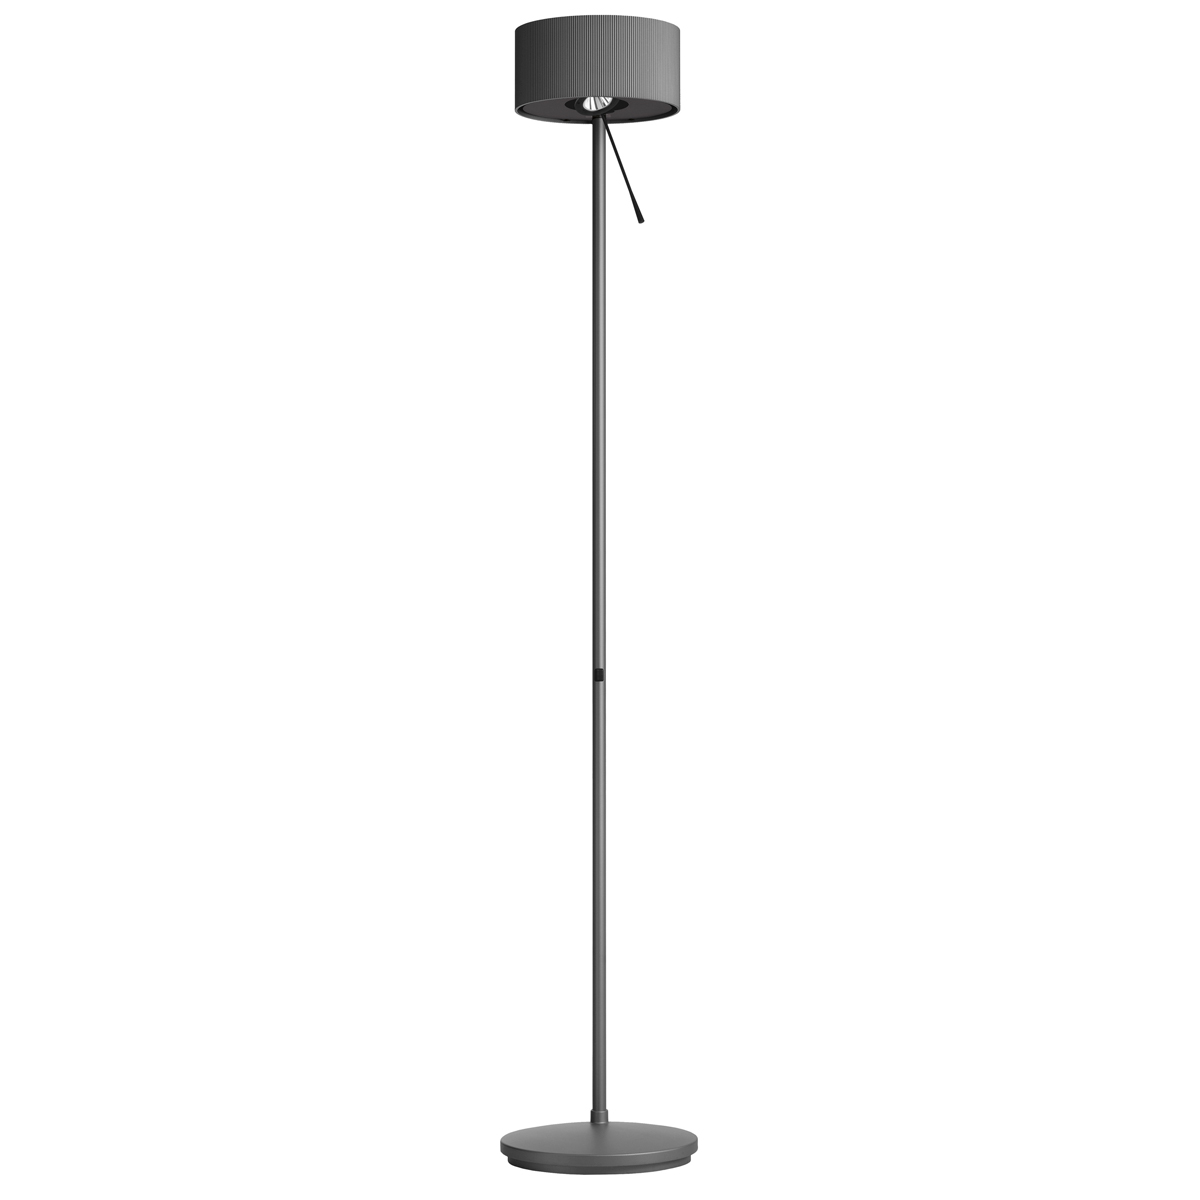 Belux Diogenes-10 LED Stehleuchte DIO10-18-8027-TD